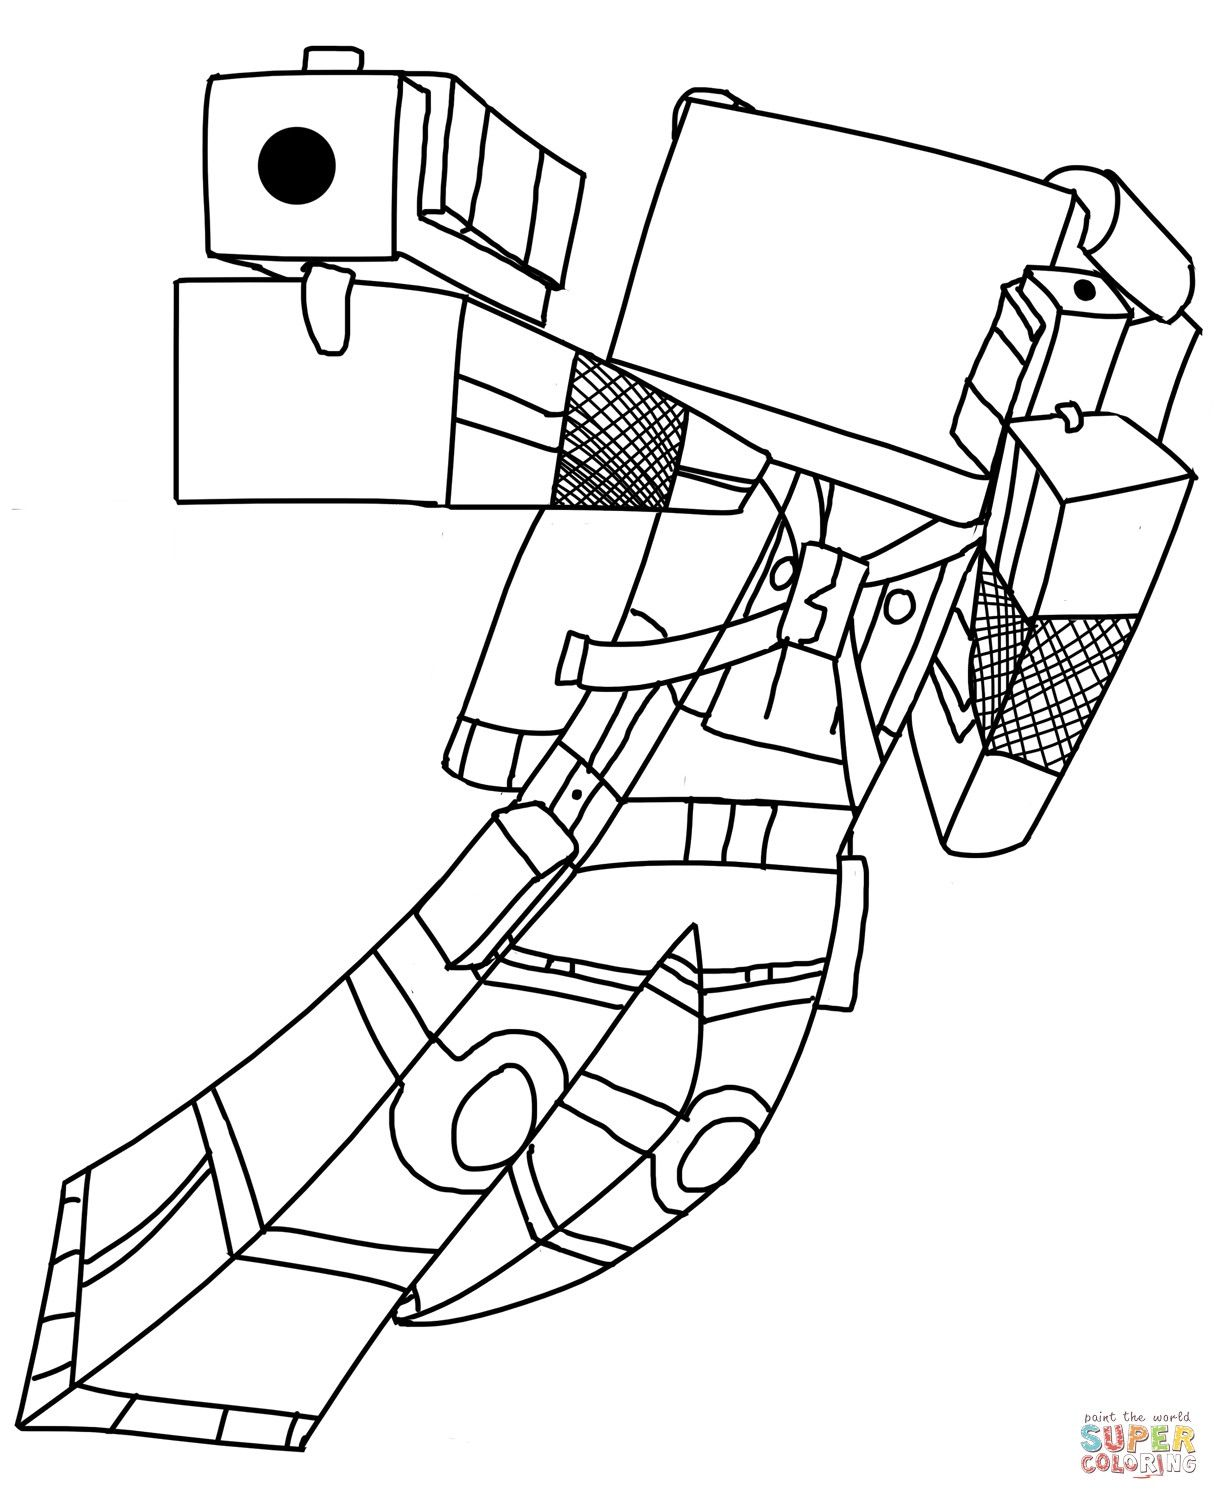 Minecraft Ocelot Coloring Page Youngandtae Com Minecraft Coloring Pages Dragon Coloring Page Coloring Pages Inspirational